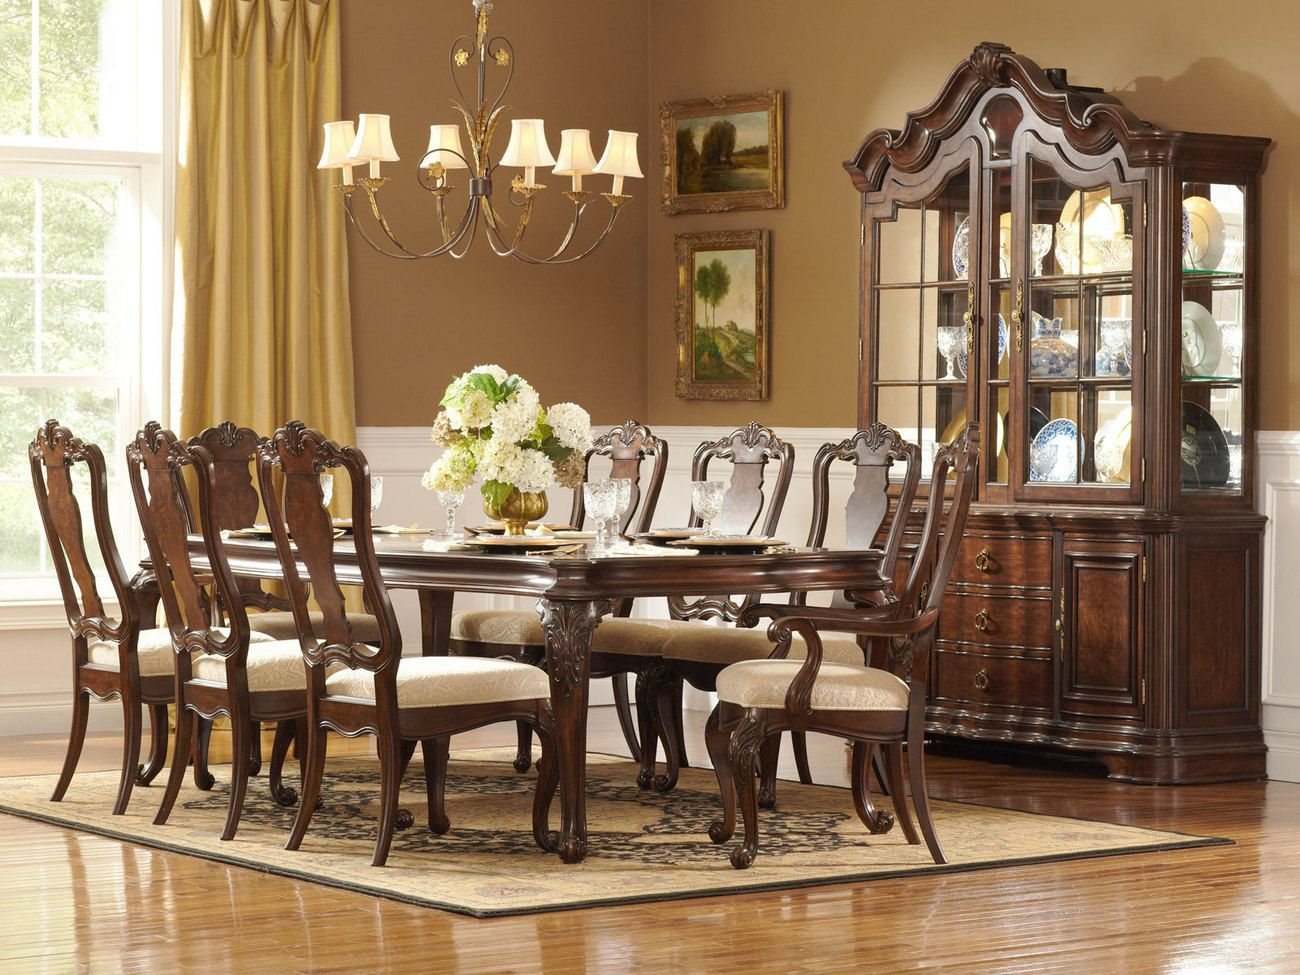 With dining room sets small traditional dining room for Small dining room furniture ideas